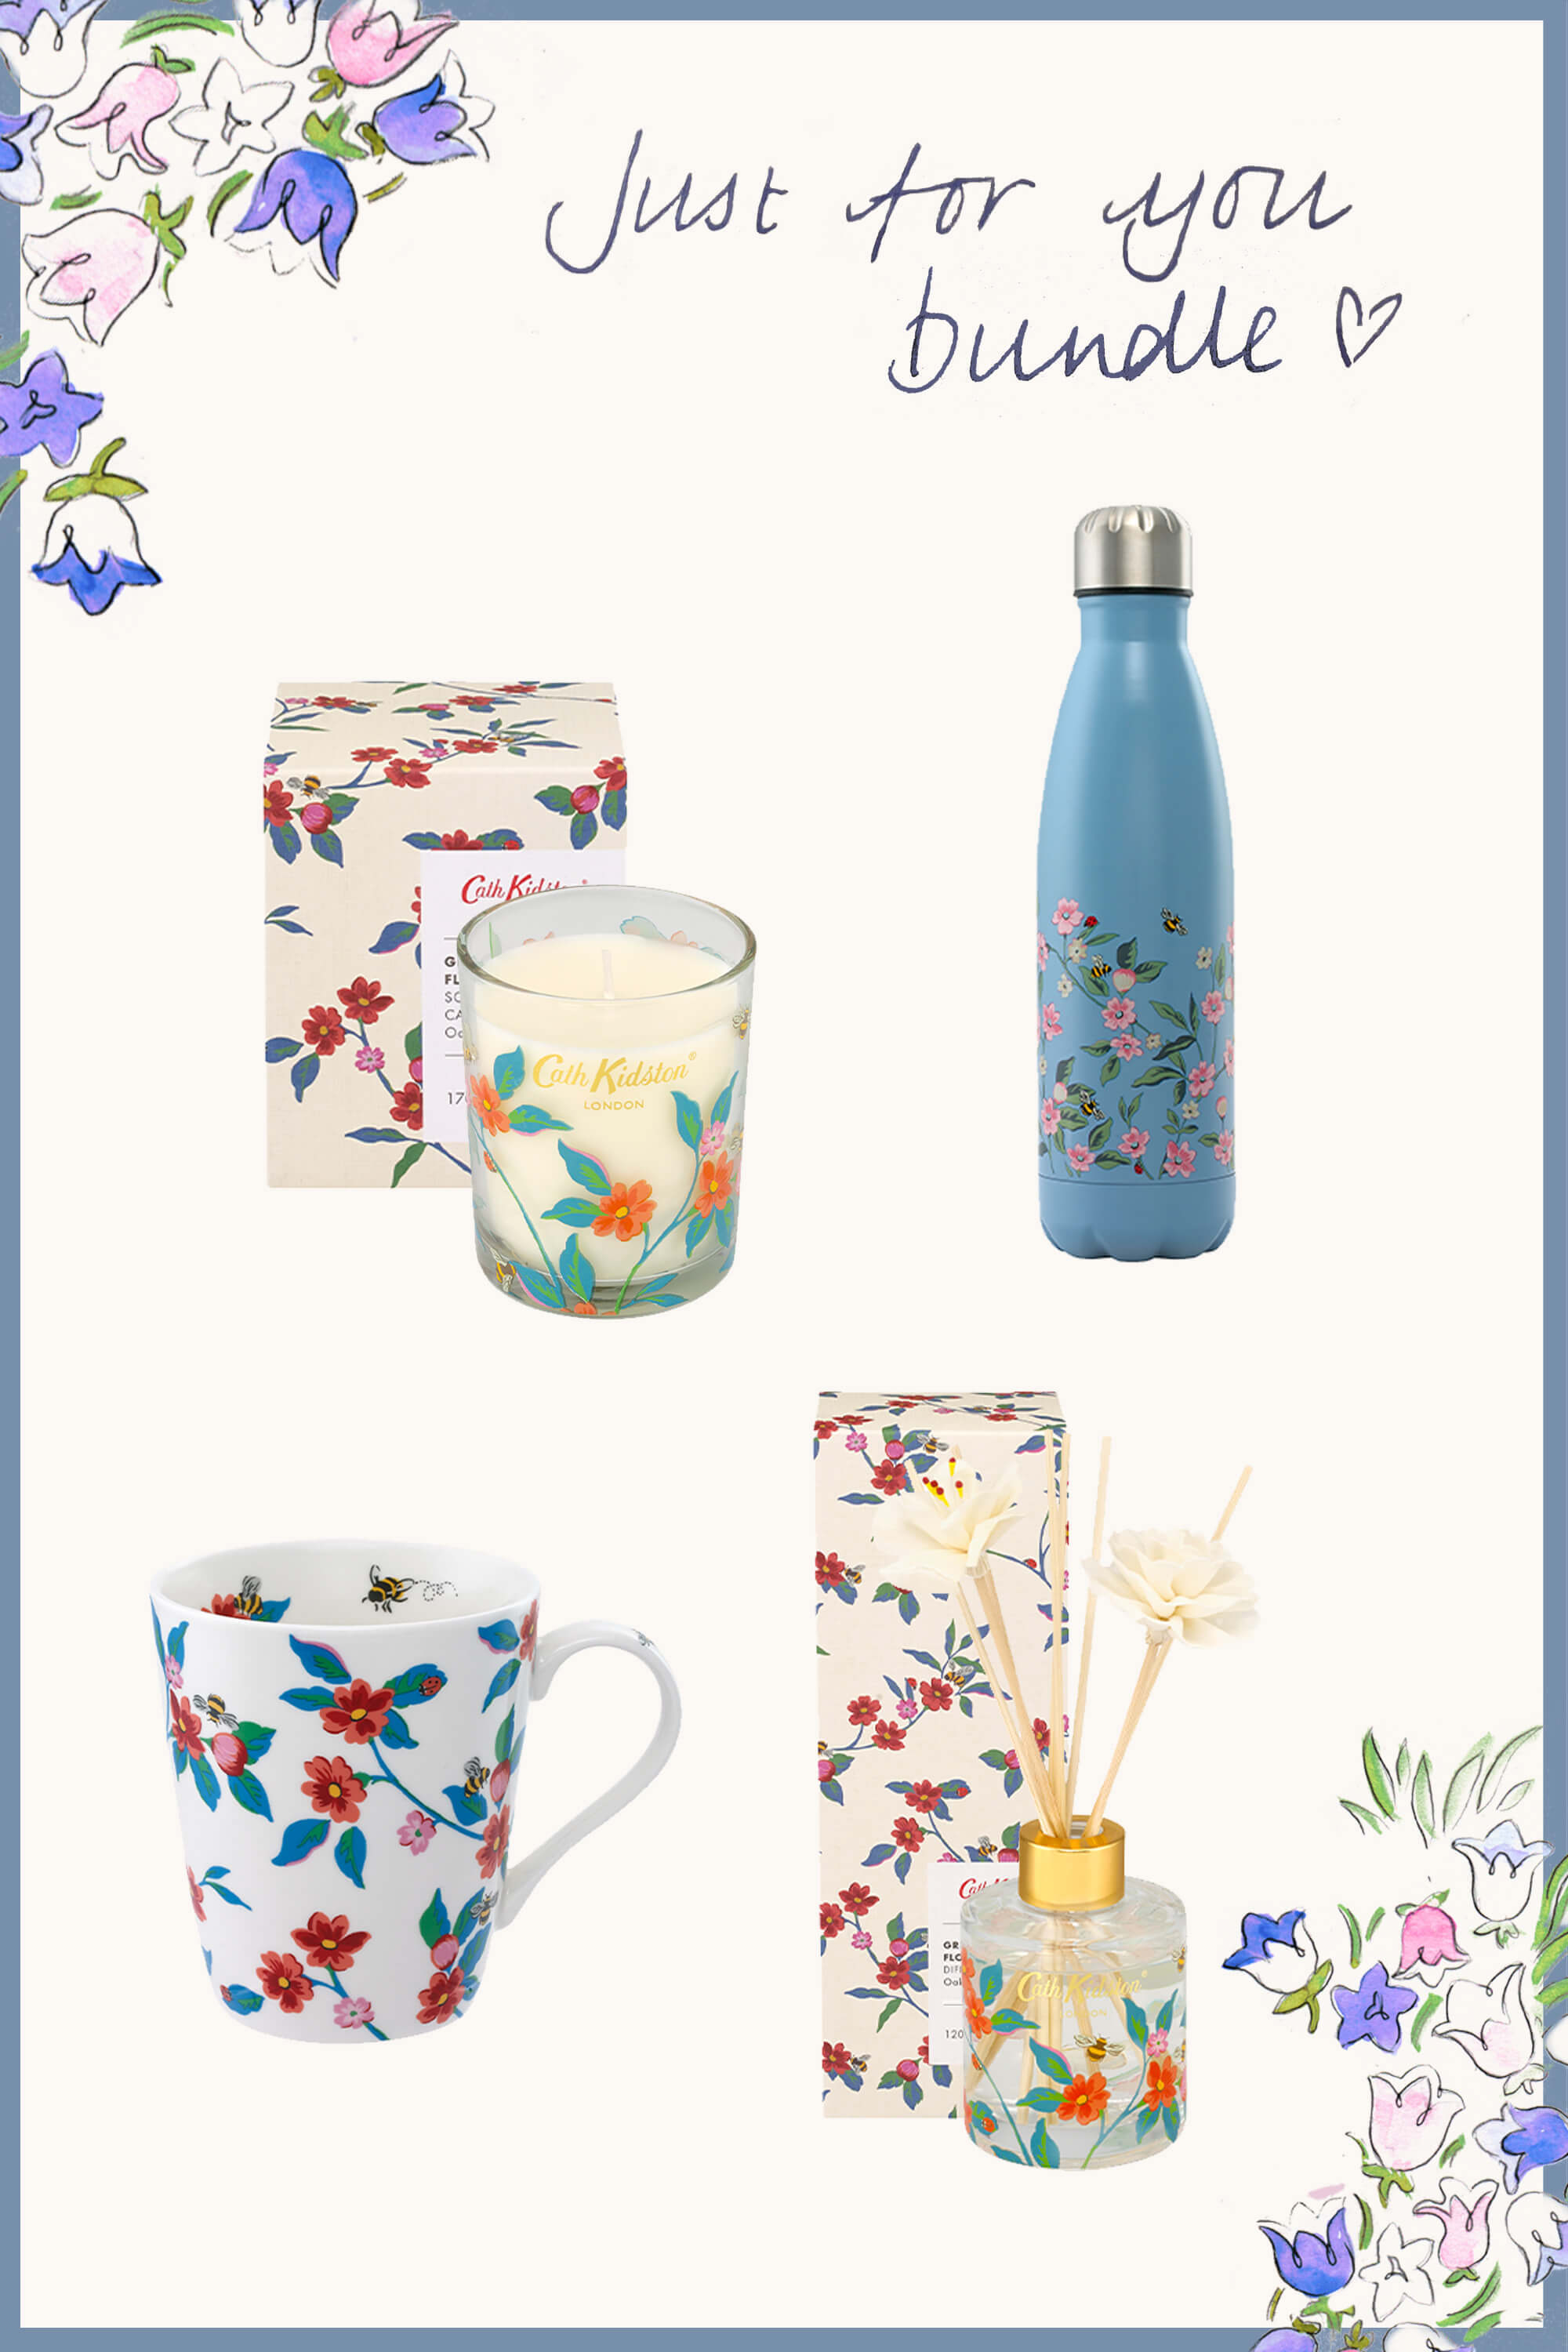 Cath Kidston The Just For You Bundle in Warm Cream